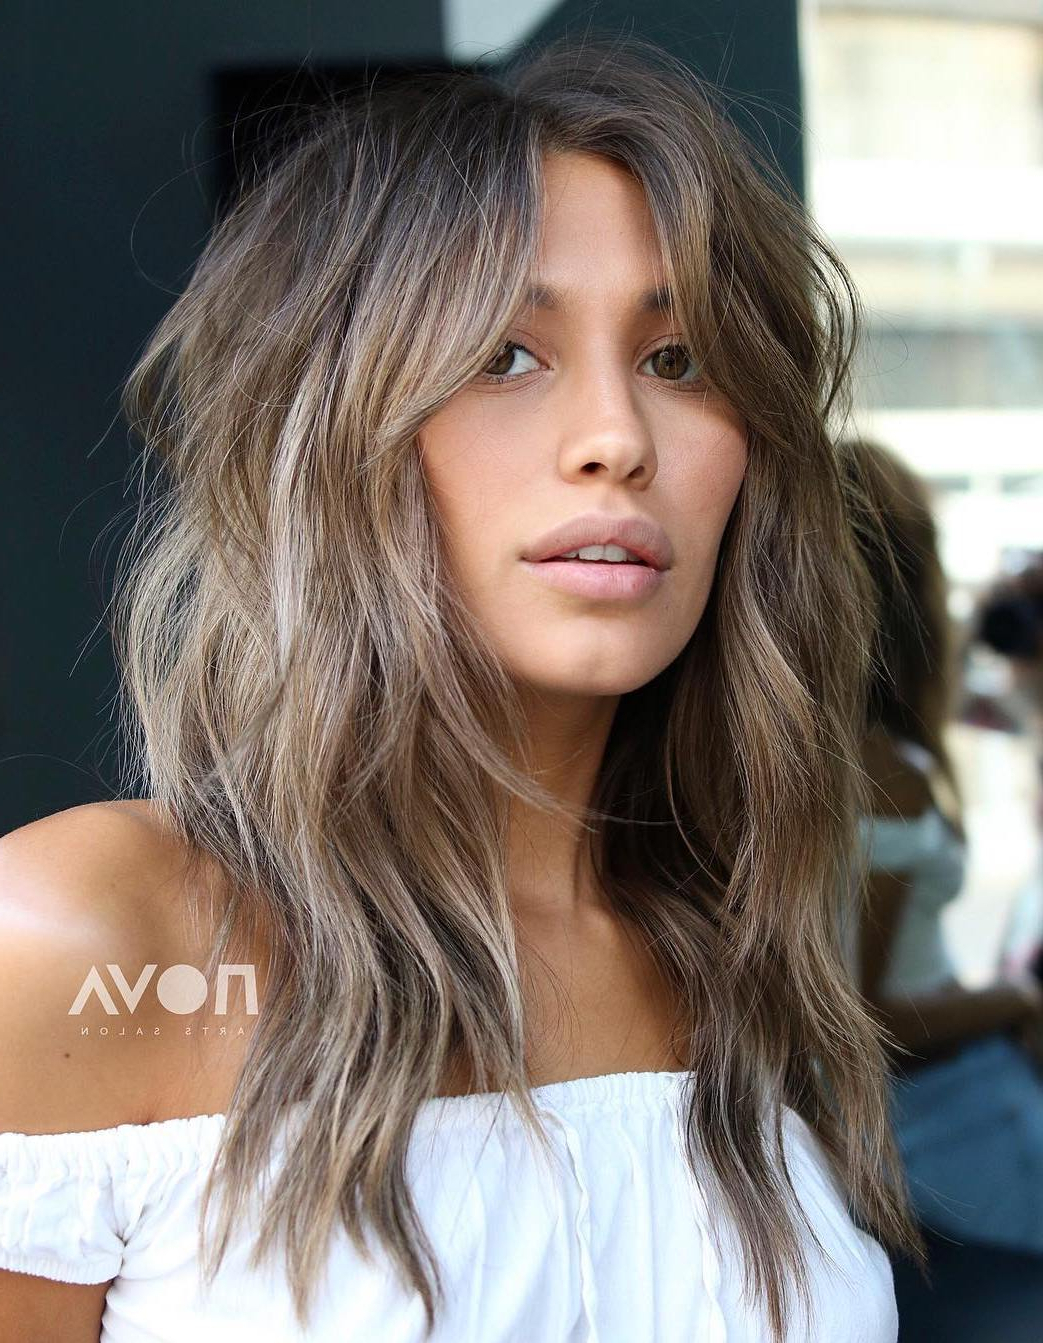 40 Modern Shag Haircuts For Women To Make A Splash Within Most Current Longer Tousled Caramel Blonde Shag Haircuts (View 16 of 20)